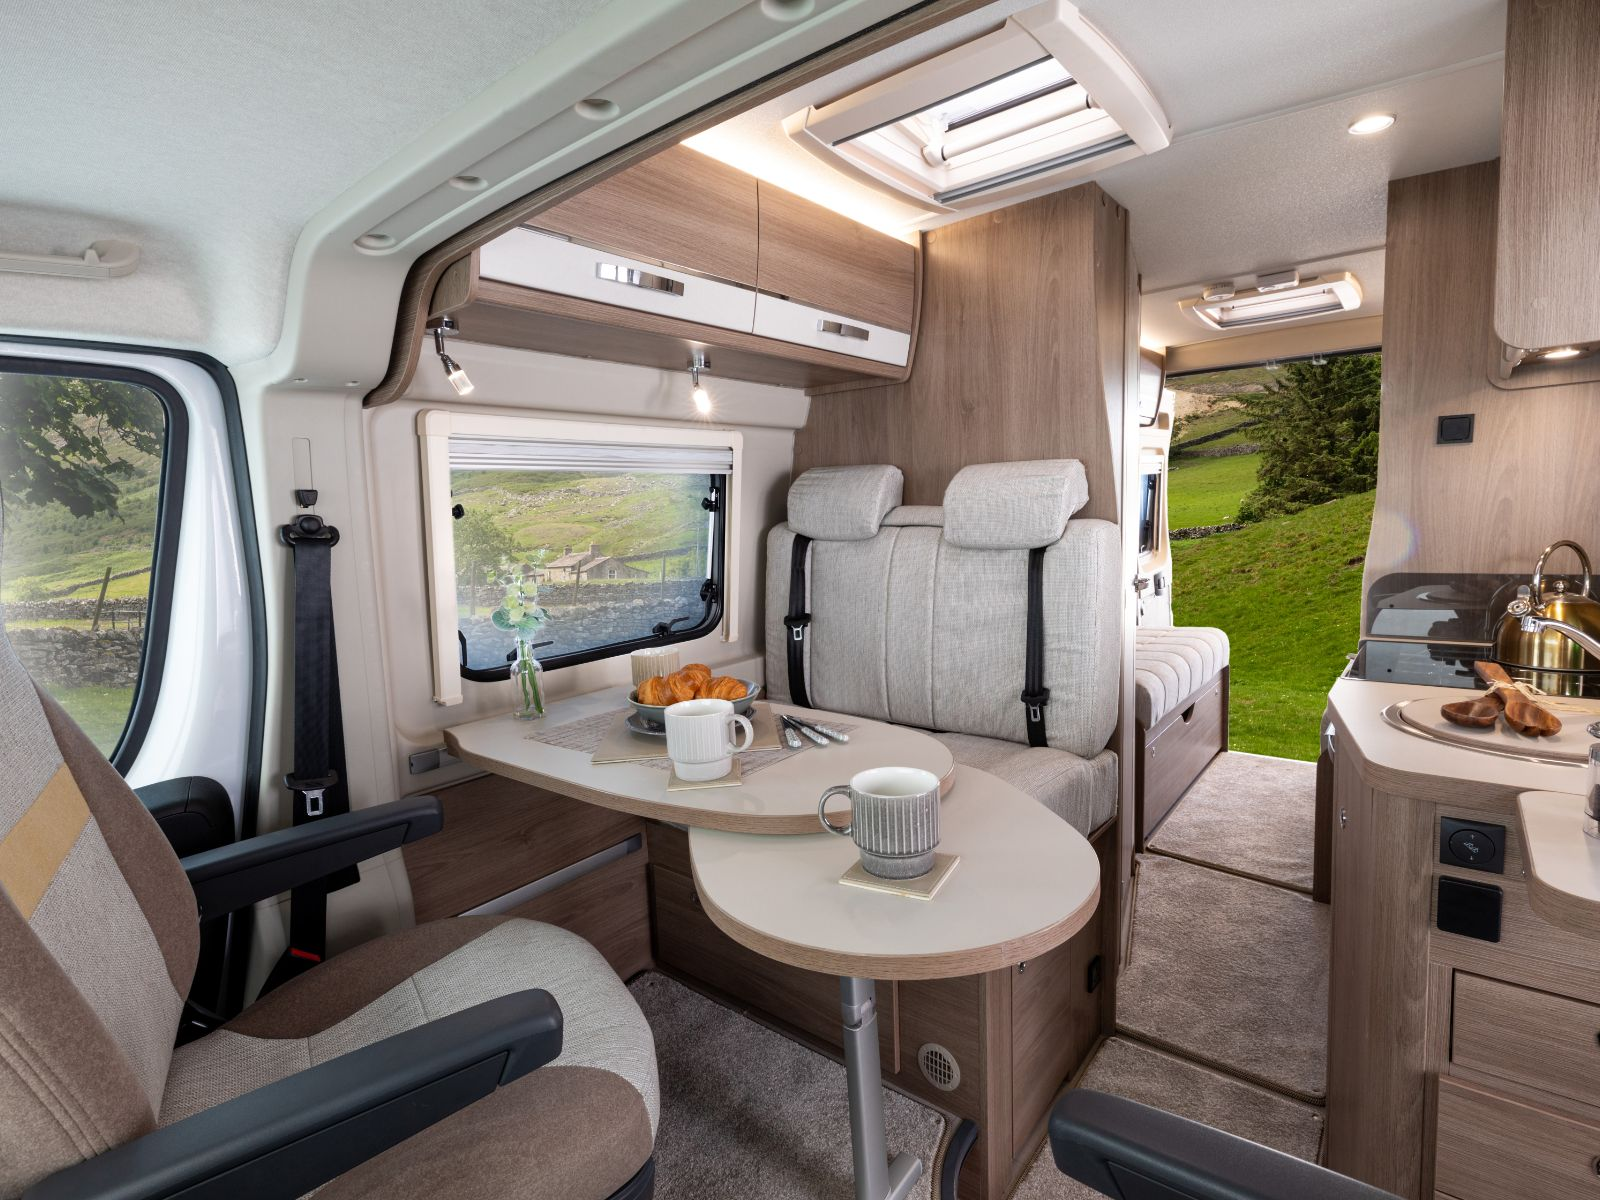 Passengers view of dining area and rear of the van with a forest backdrop '